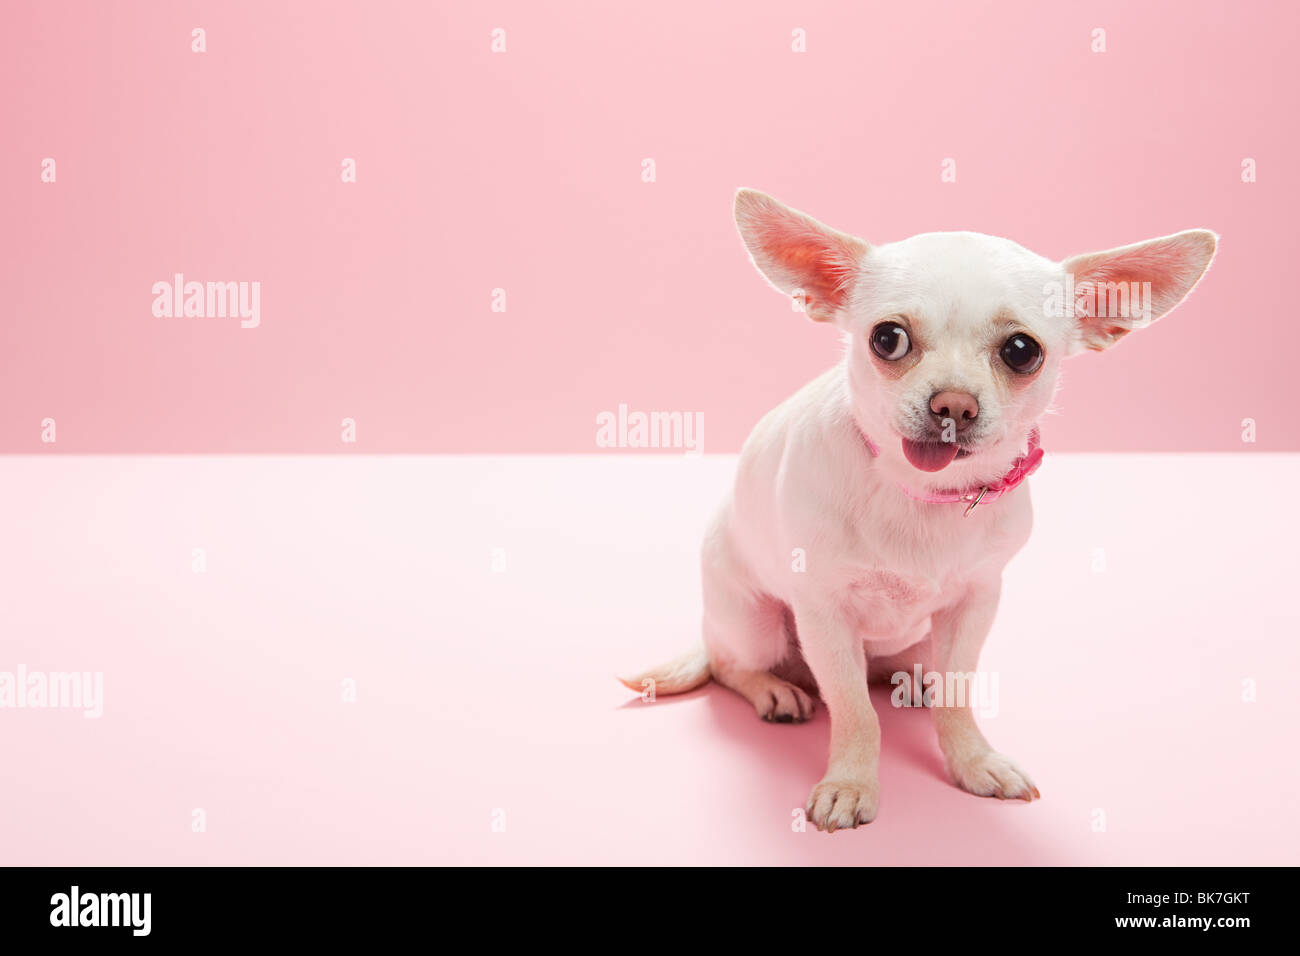 Portrait of a chihuahua making a face - Stock Image